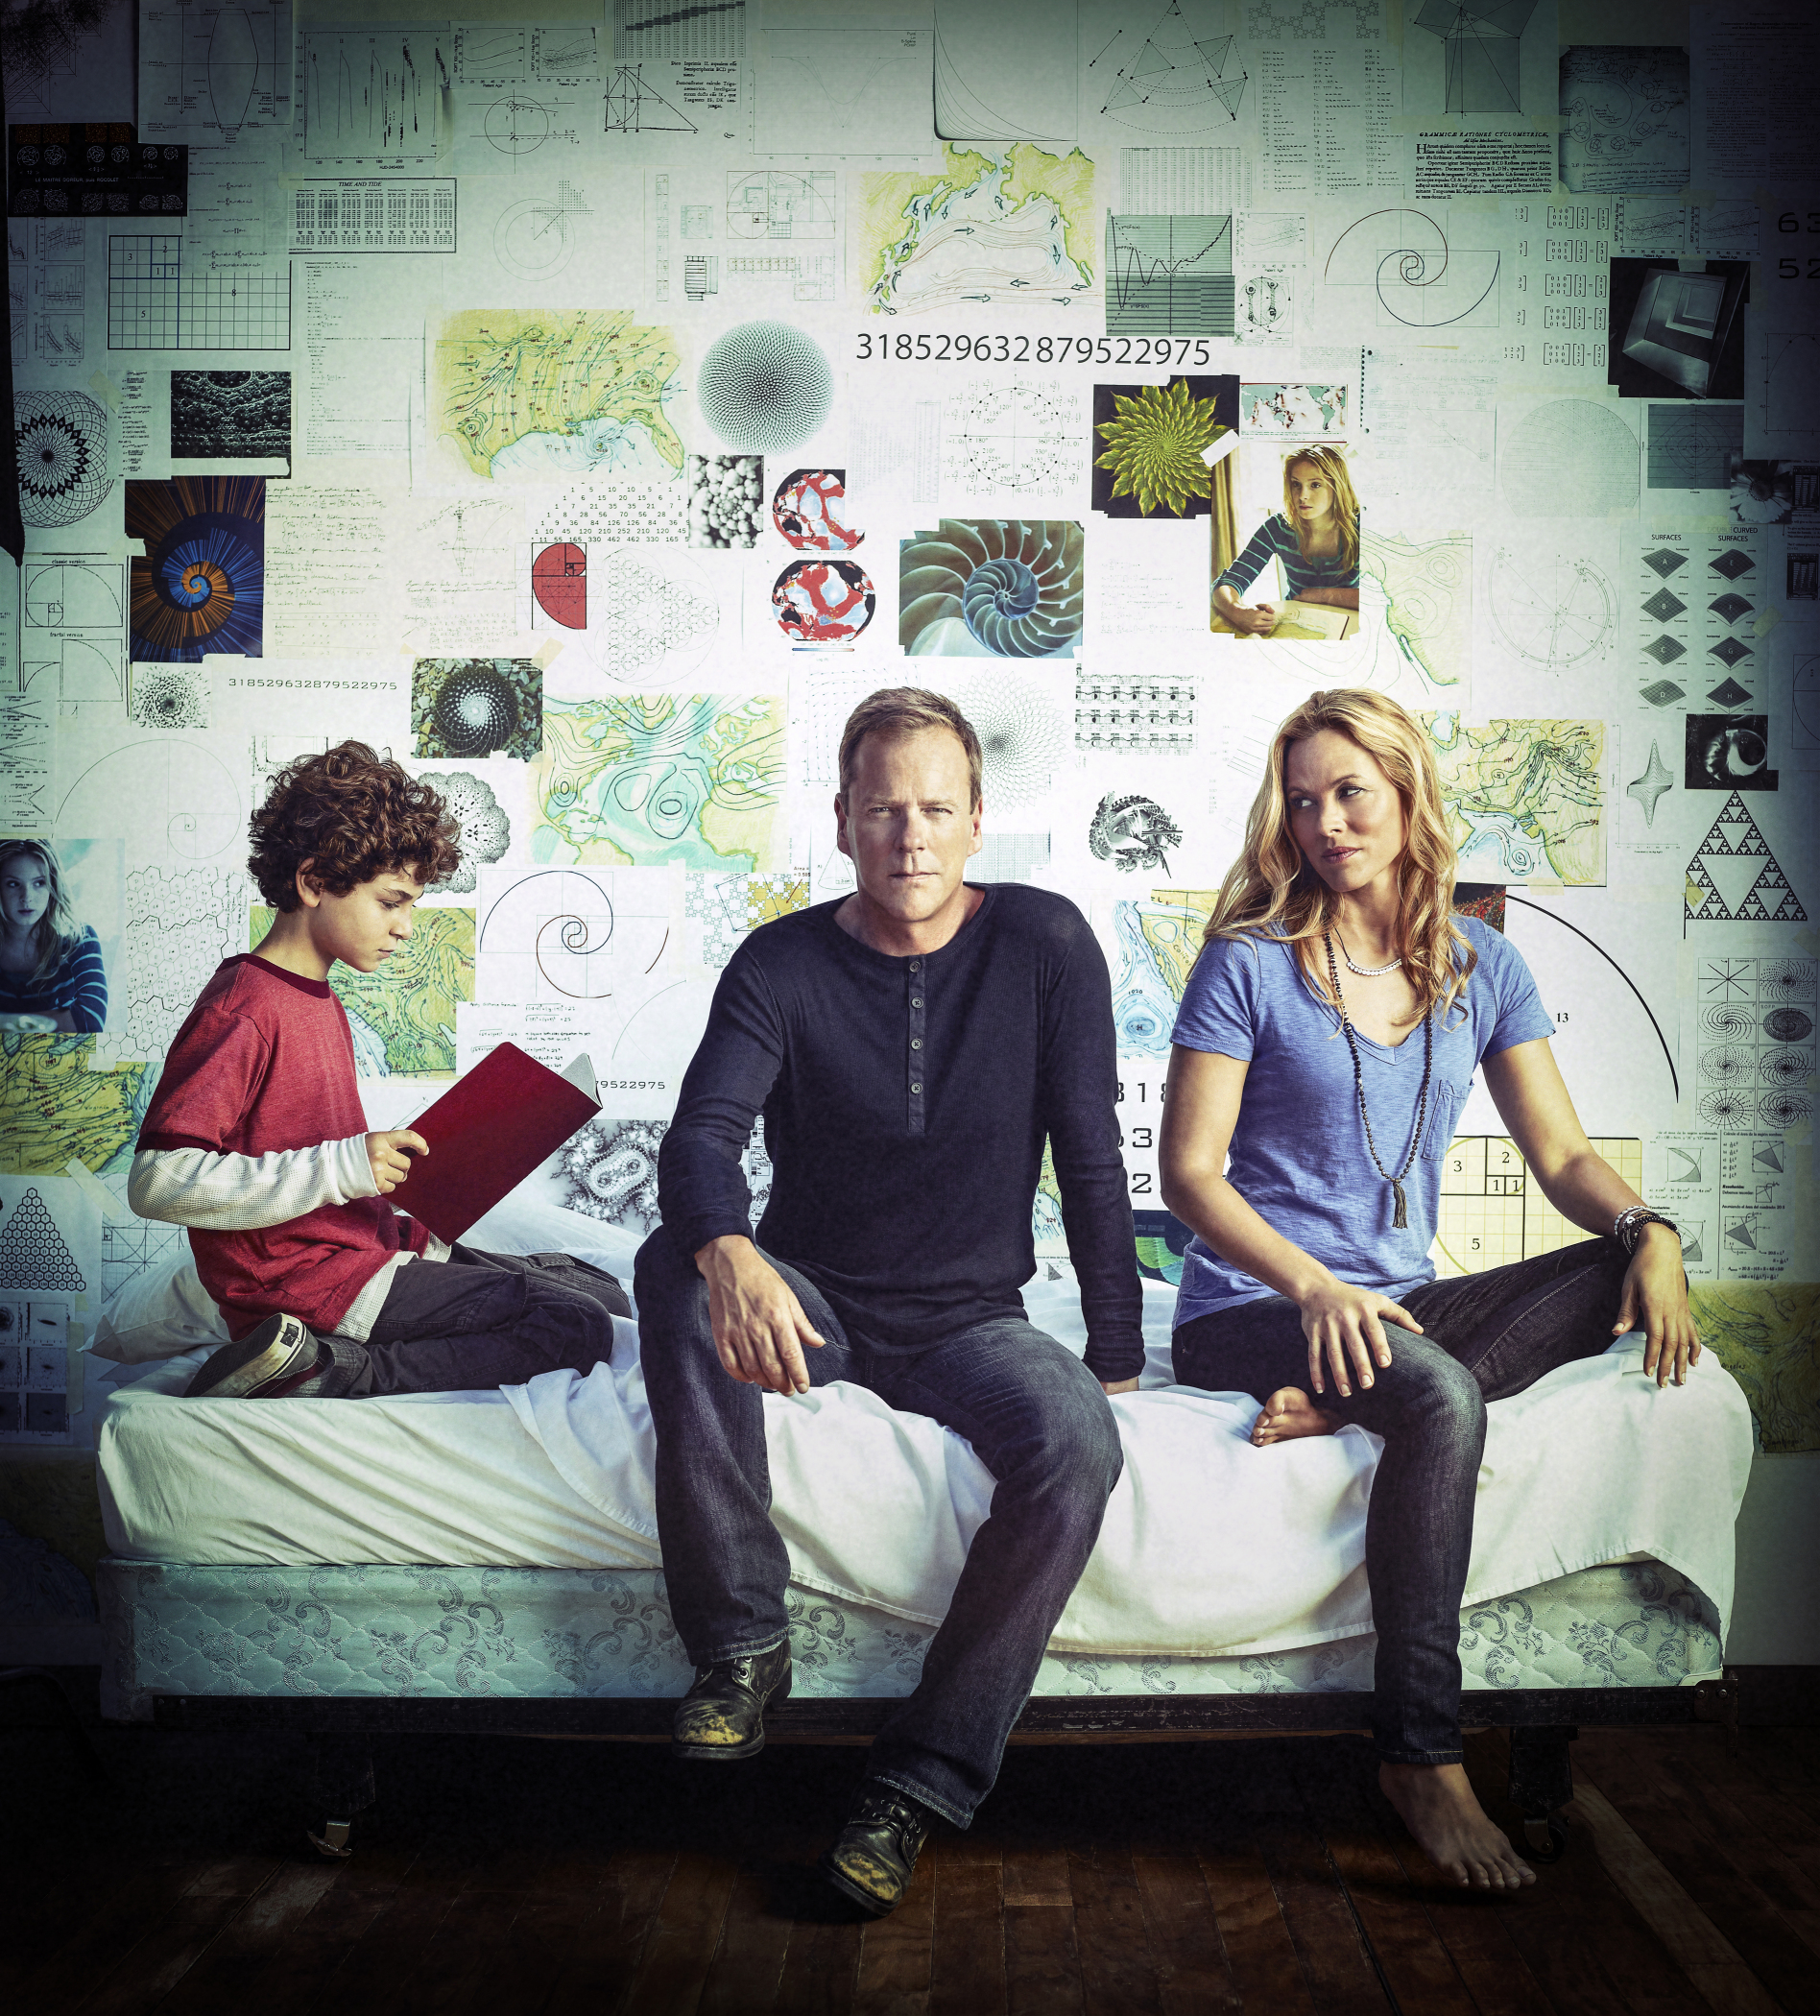 [影集] Touch (2012~2013) Touch-Season-2-Kiefer-Sutherland-Maria-Bello